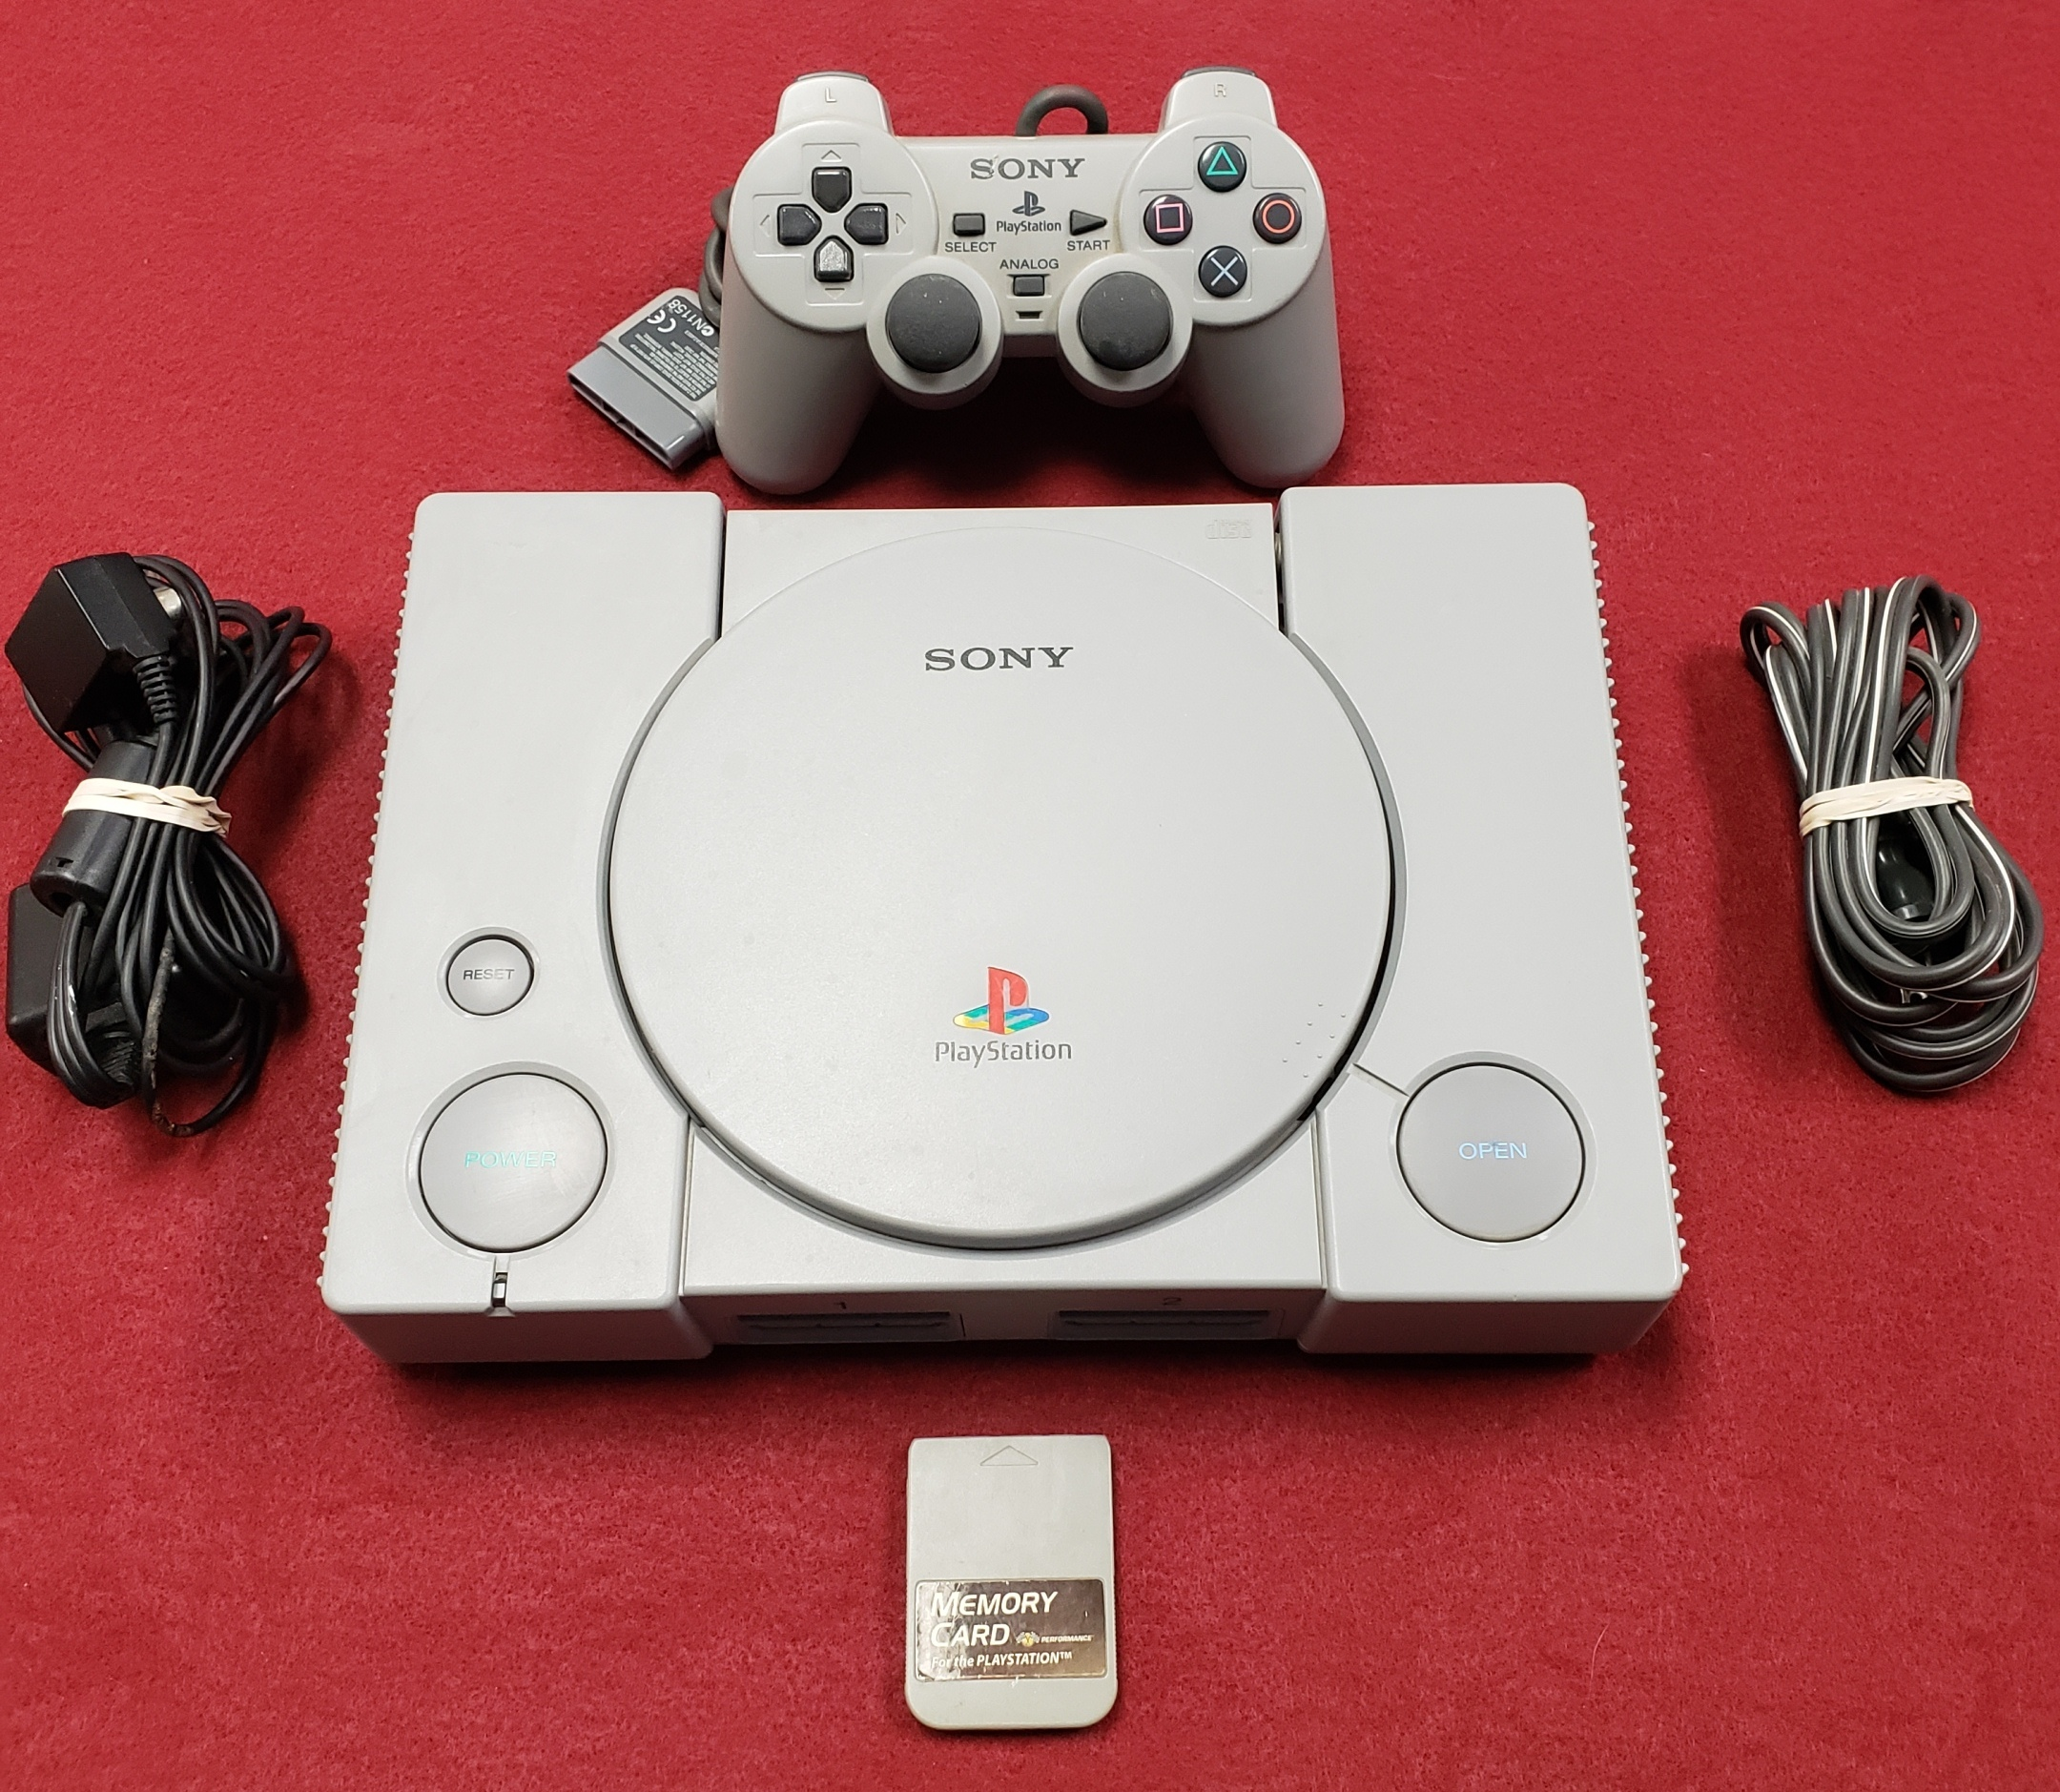 ELECTRONICS - GAMES - GAME SYSTEMS - PSONE - SONY - SCPH-7001